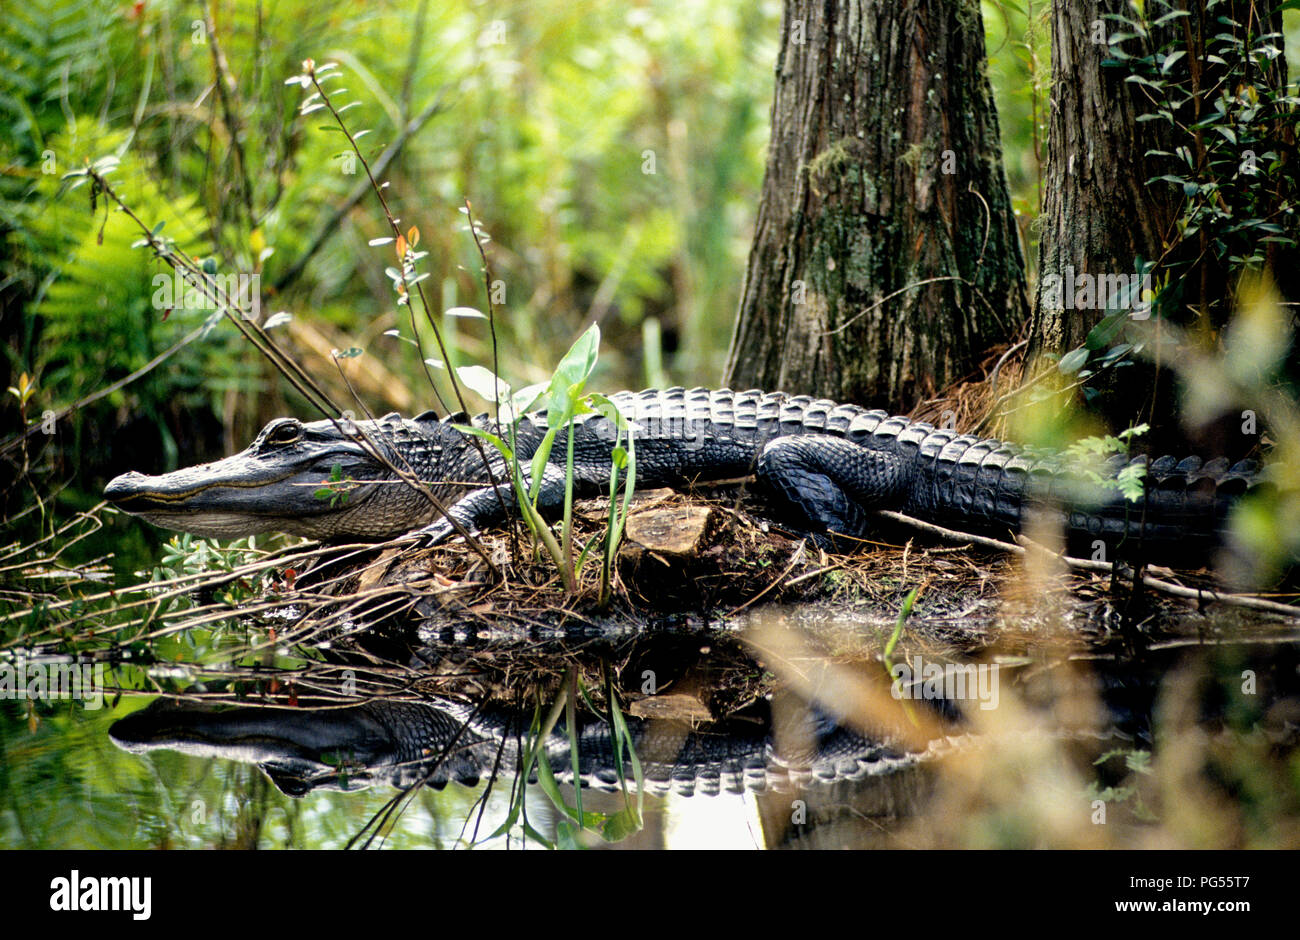 American alligator (Alligator mississippiensis) in the Okefenokee Swamp in Georgia - Stock Image